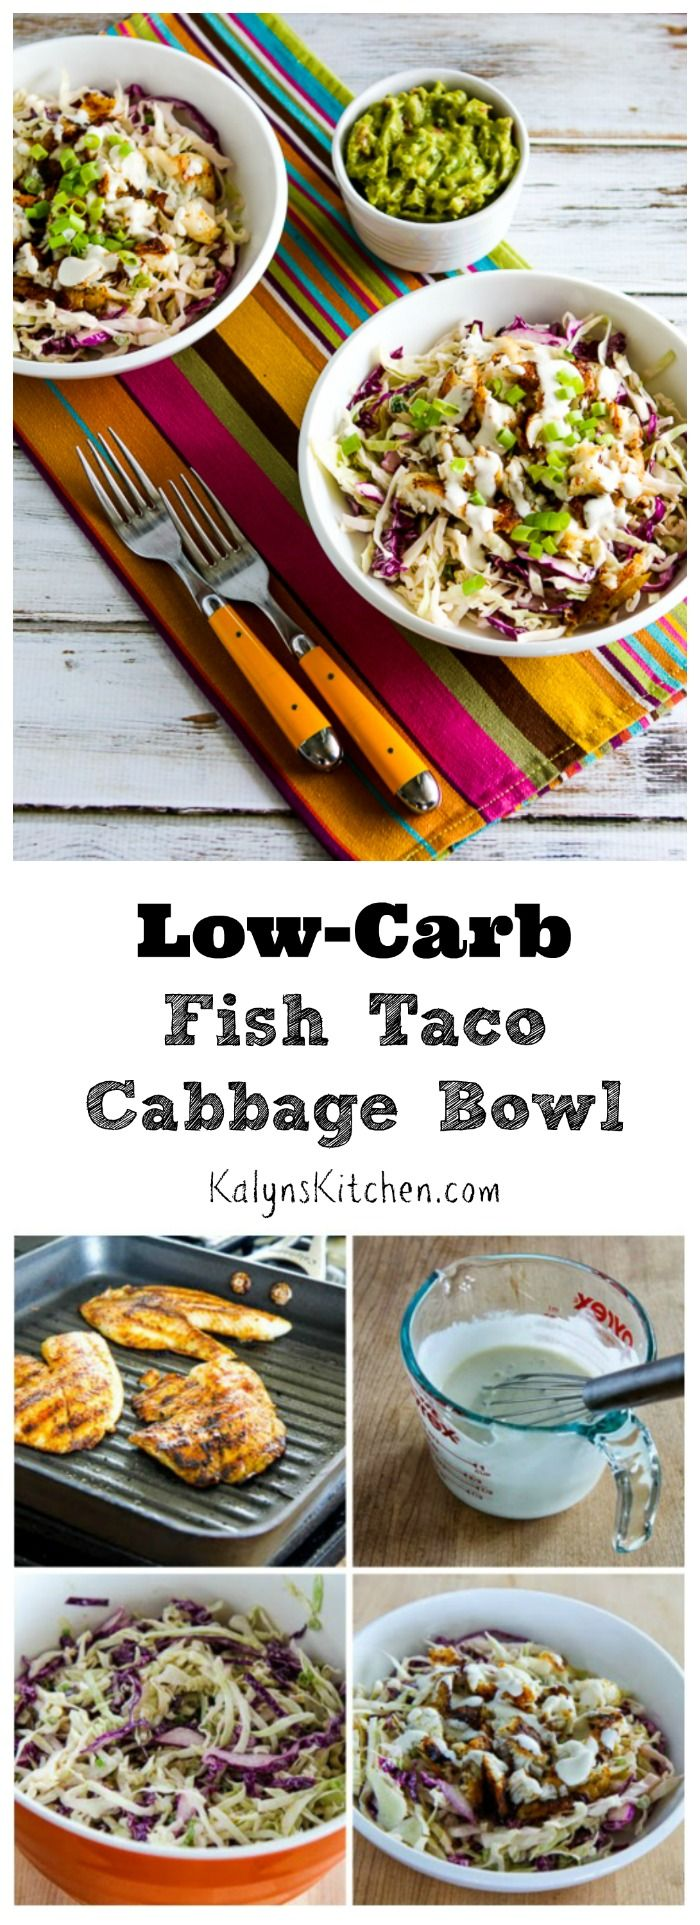 These Low-Carb Fish Taco Cabbage Bowls have all the amazing flavors of fish tacos without the carbs! You can cook the fish on an outdoor grill or on a grill pan on the stove, or even use leftover grilled fish to make this delicious one-dish summer meal that's low-carb, gluten-free and South Beach Diet friendly. And this tasty bowl meal can be Paleo or Whole 30 approved with the right ingredient choices. [from KalynsKitchen.com]